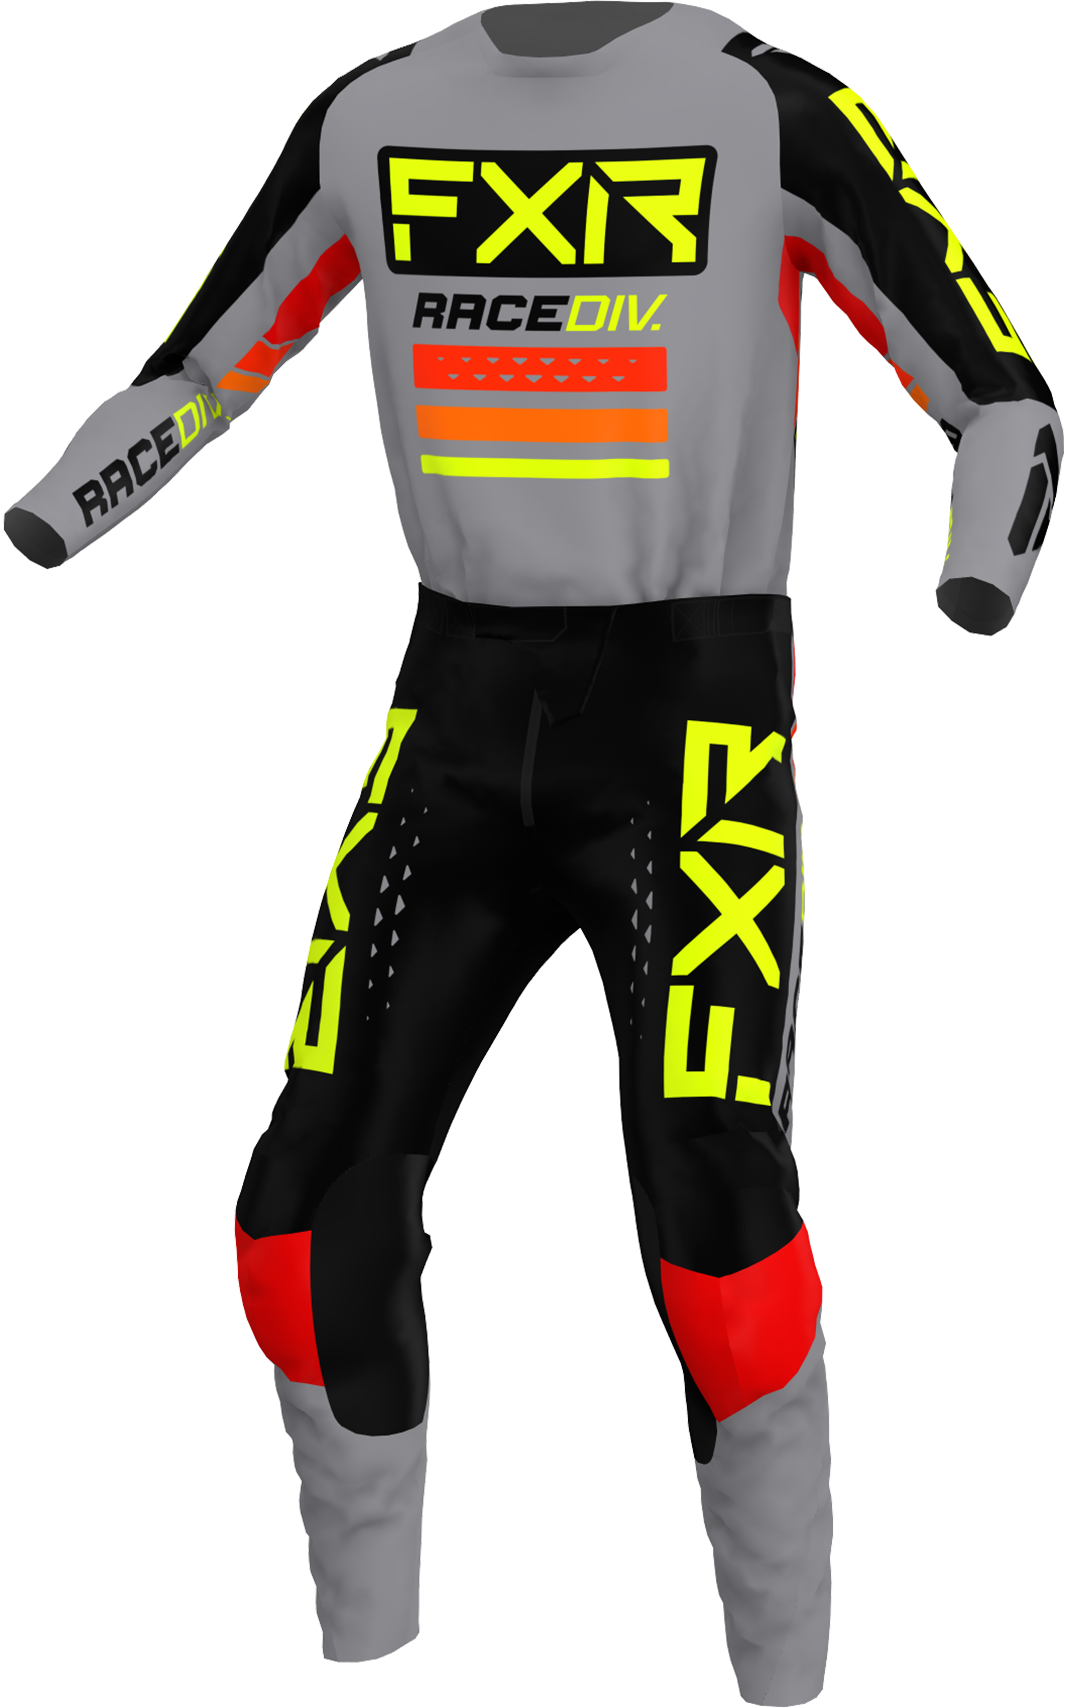 A 3D image of FXR's Clutch Pro MX Jersey and Pant 22 in Grey / Black / Hivis colorway